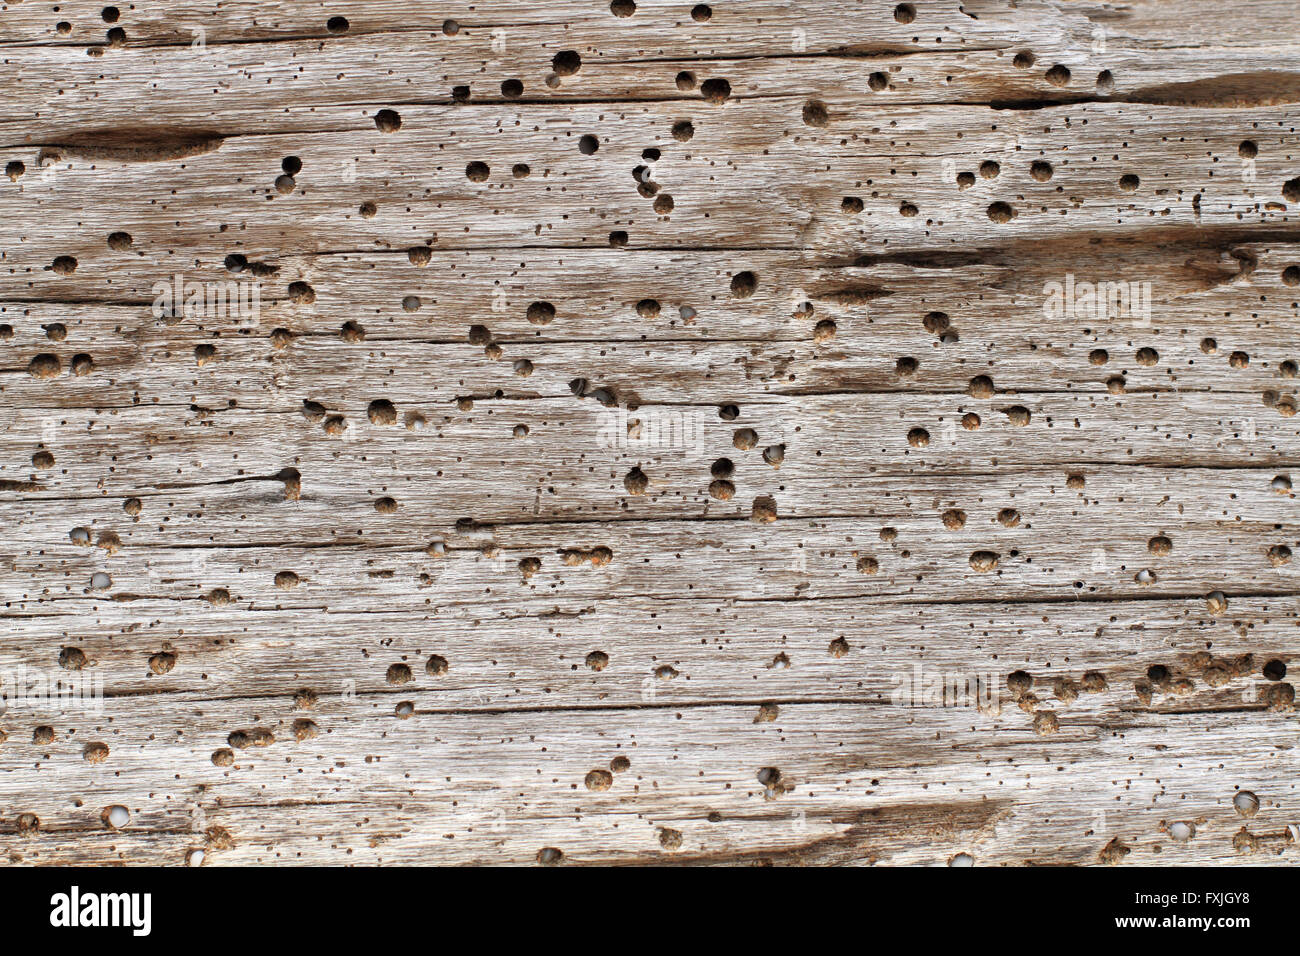 Driftwood plank background with marine worm or borer holes some filled with beach sand and shell grit - Stock Image